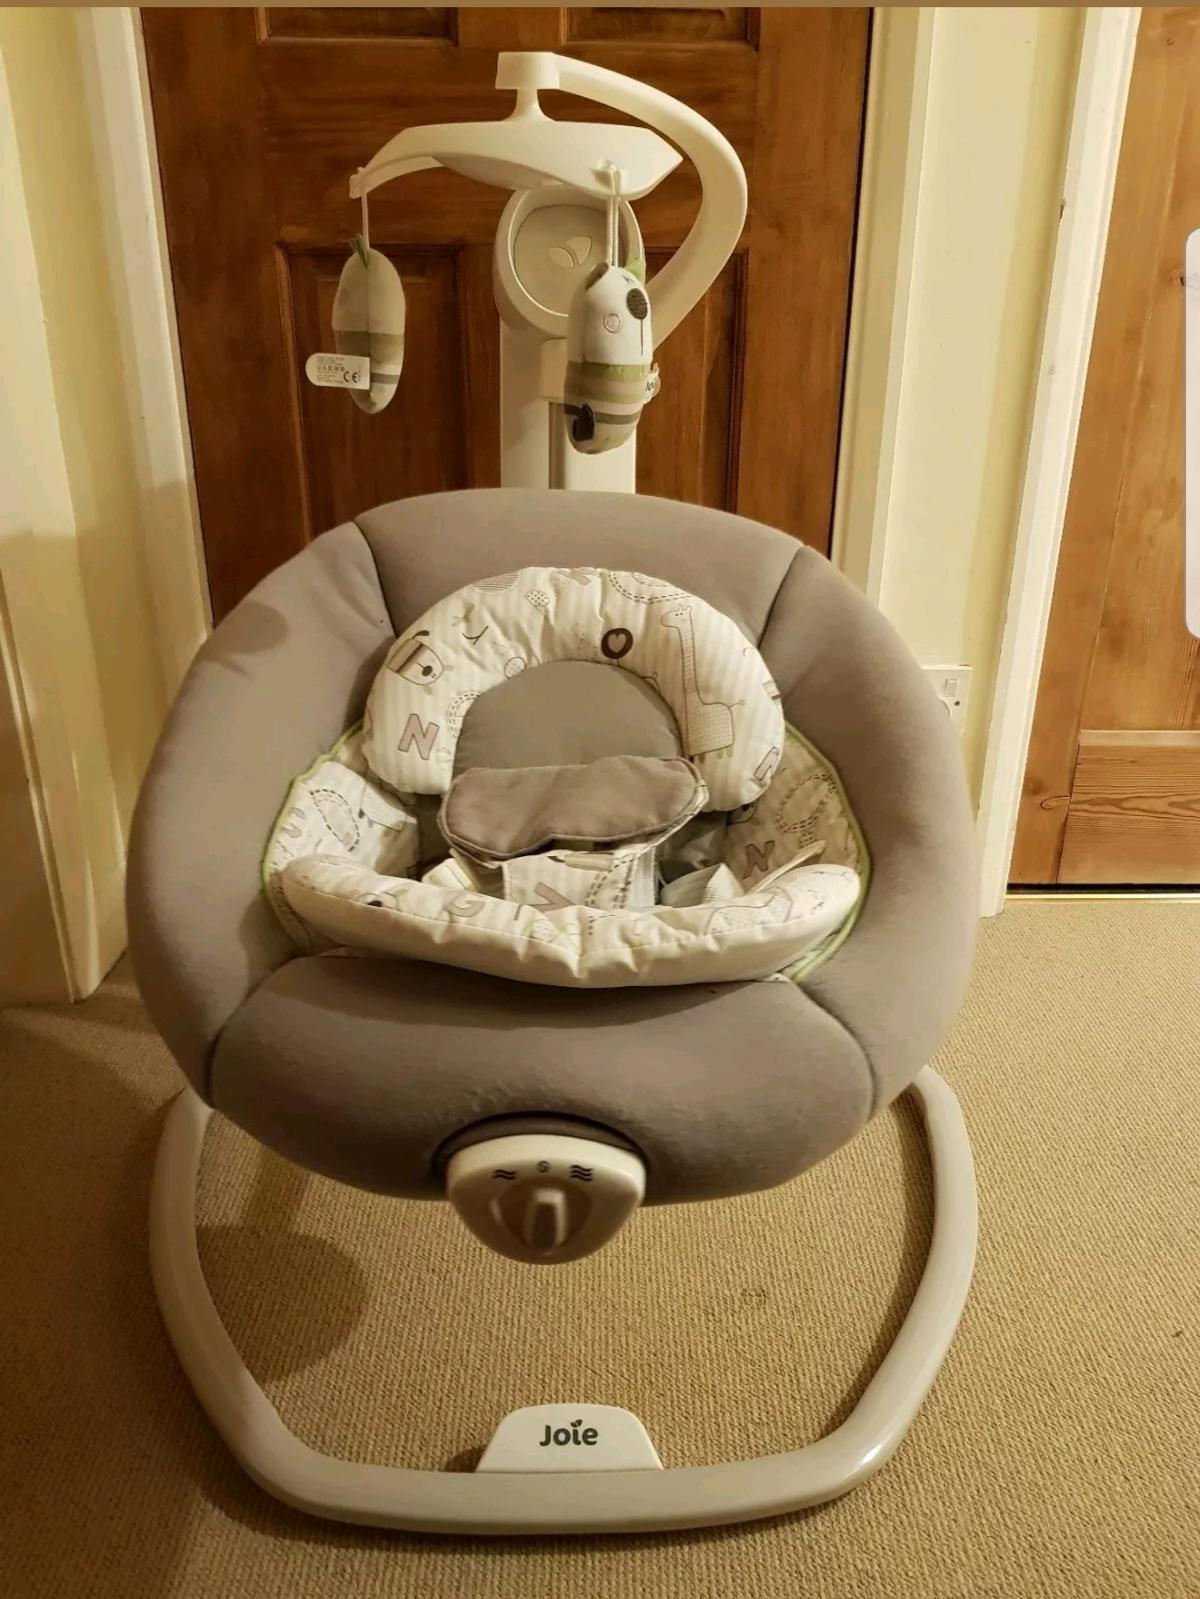 Joie Baby Swing Rocker Joie Serina Swivel Portable Baby Swing Rocker